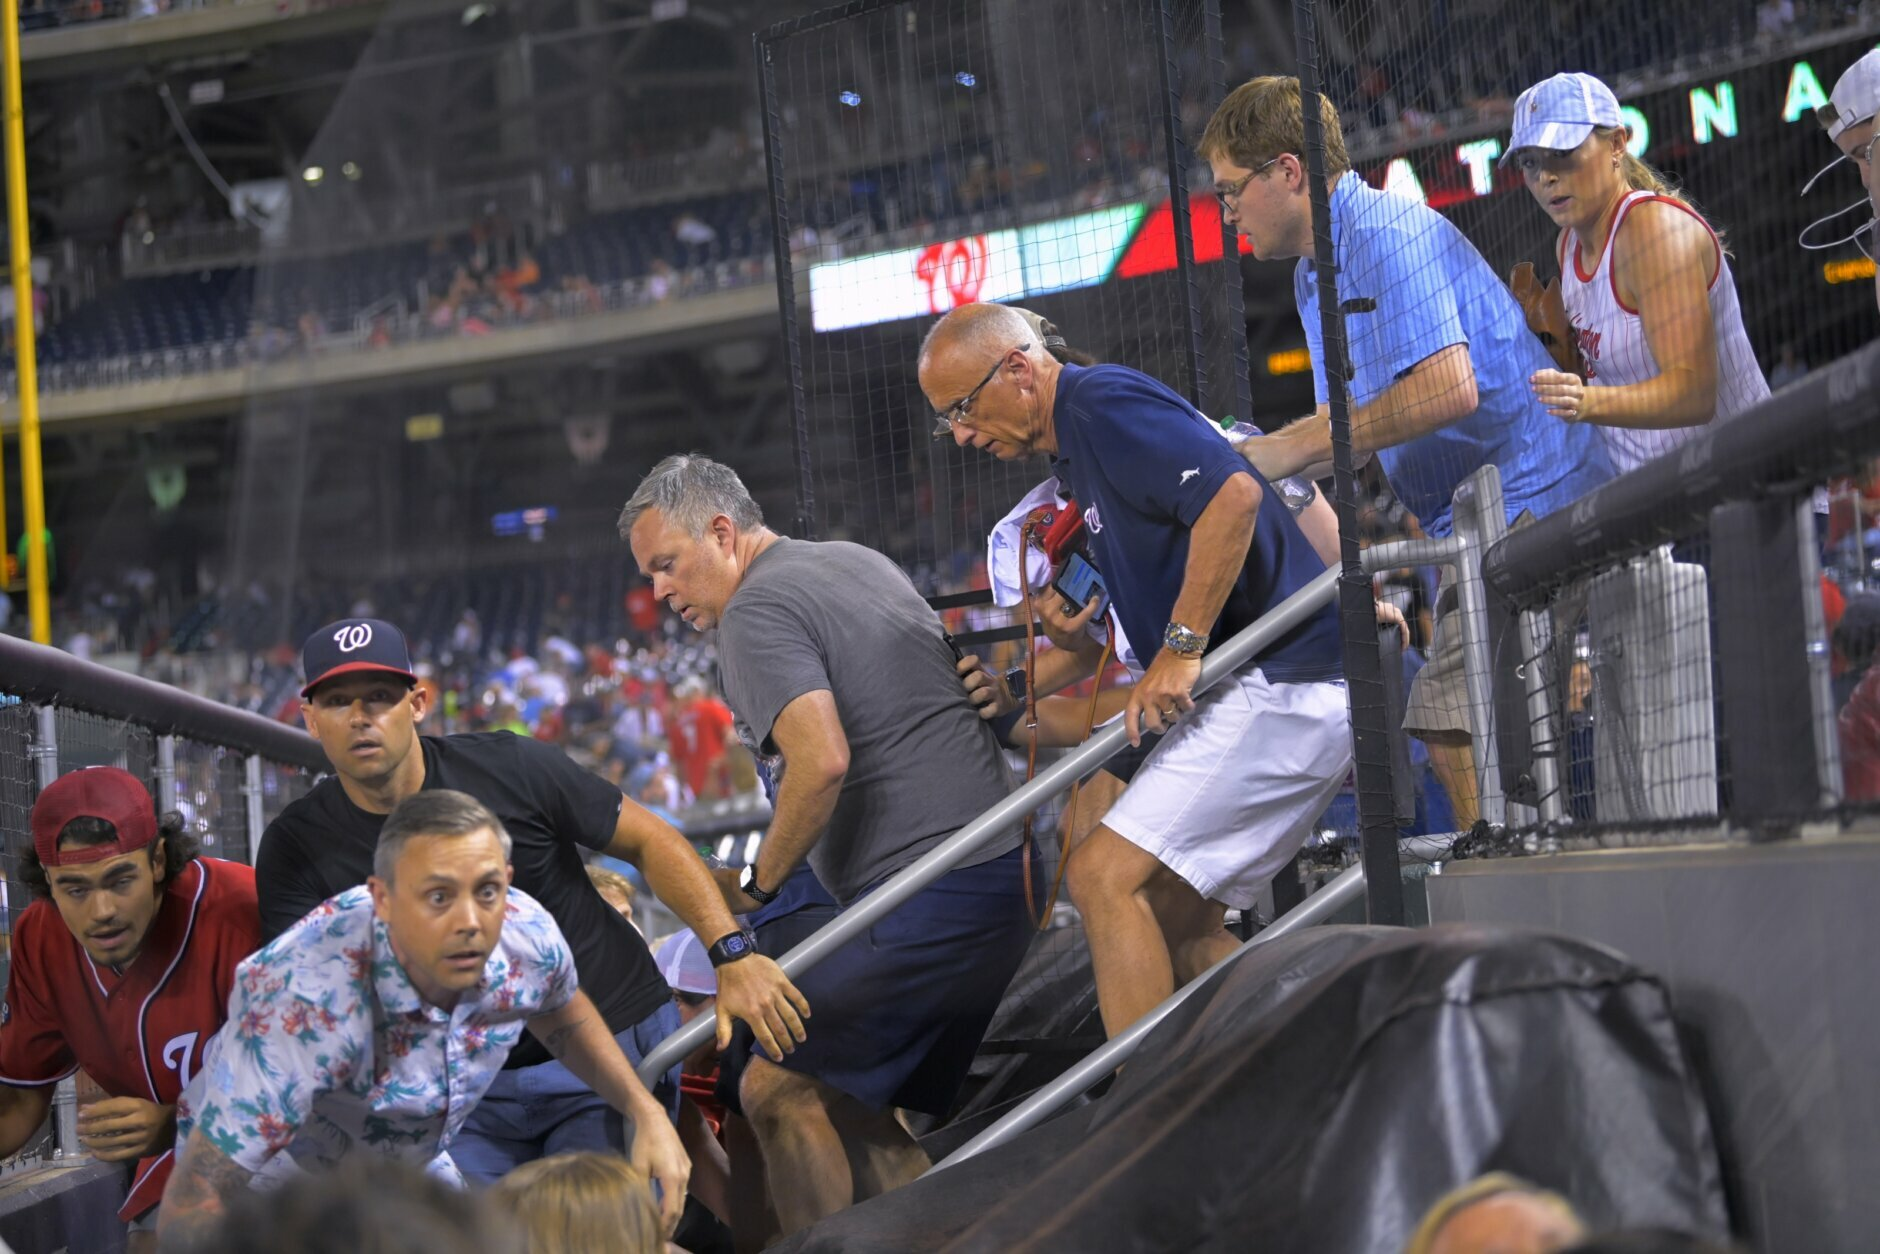 Shooting outside Nationals Park injures 3; officials seek suspect vehicle |  WTOP